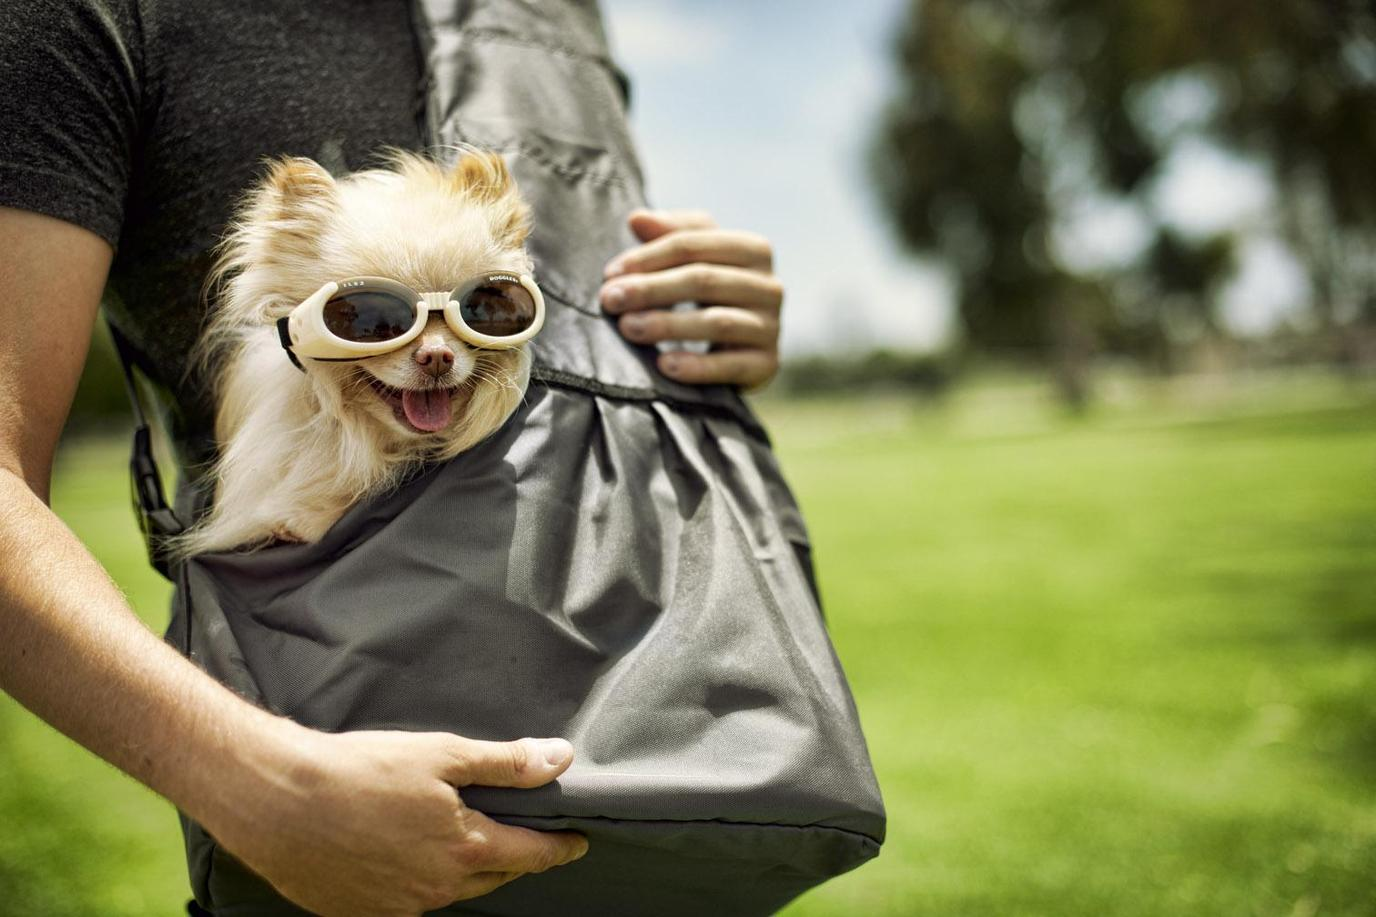 A Healthy Dog Wears Sunglasses as She Rides in a Backpack.